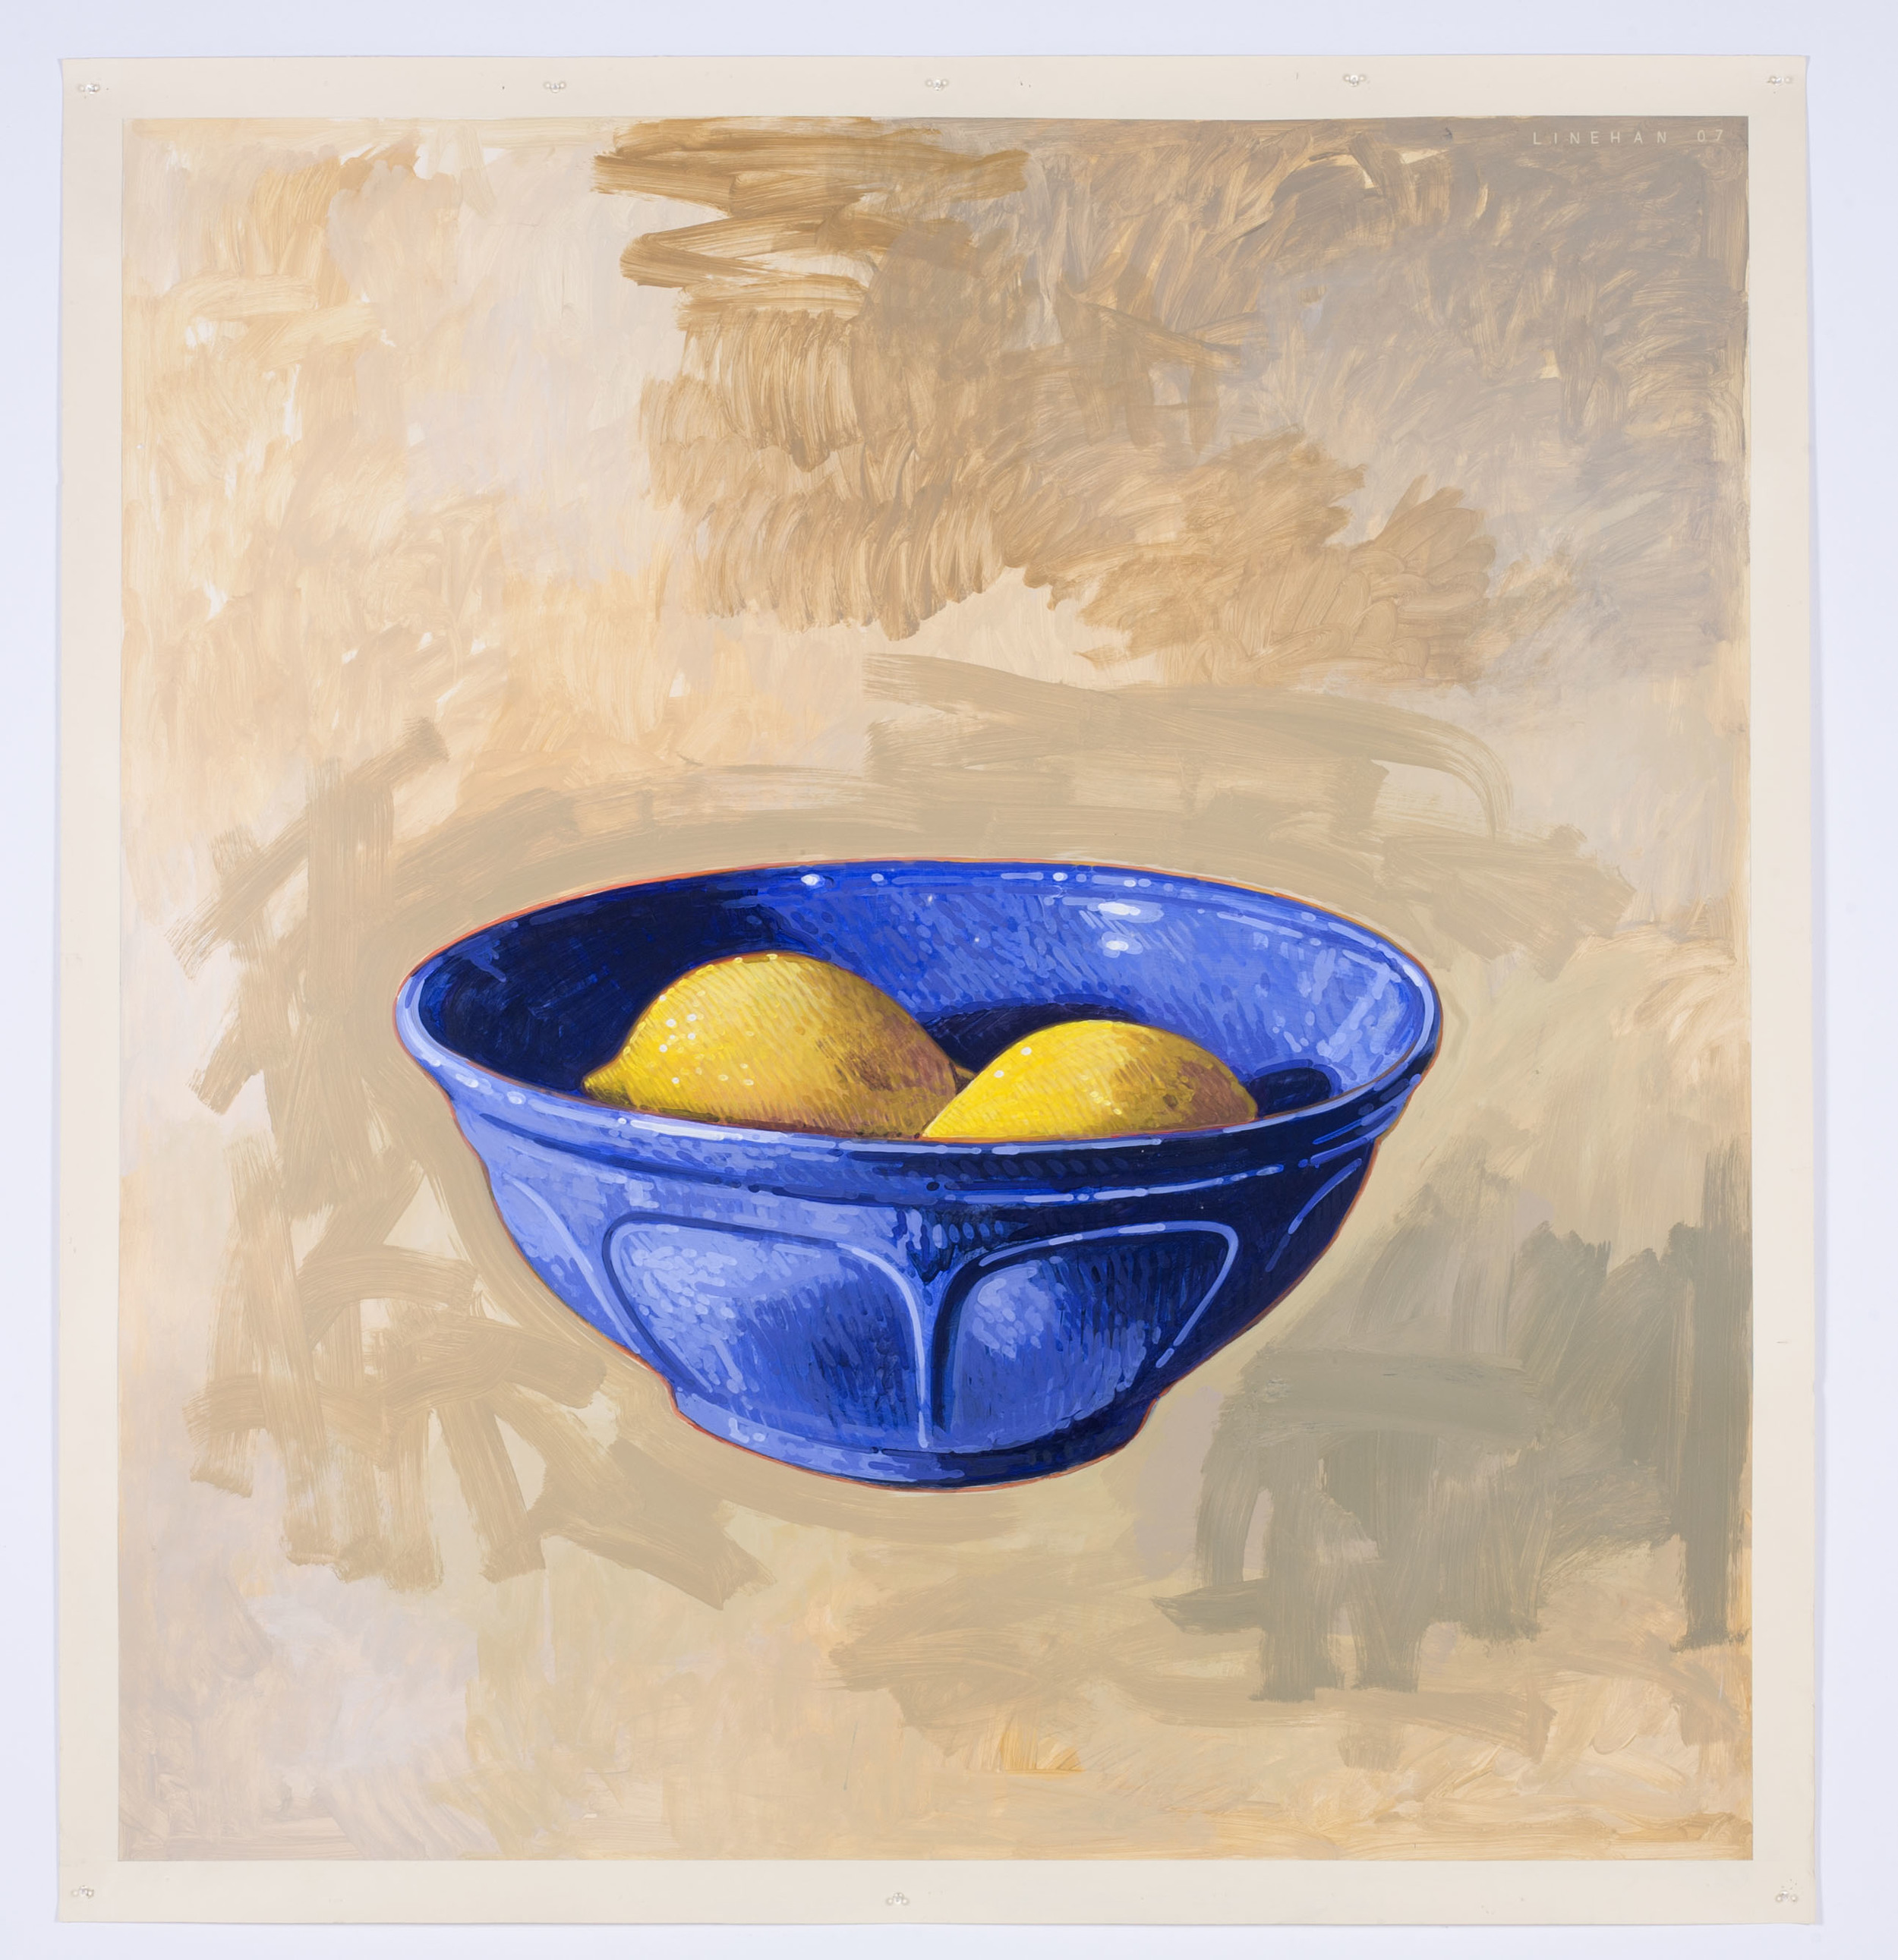 BOWL OF LEMONS